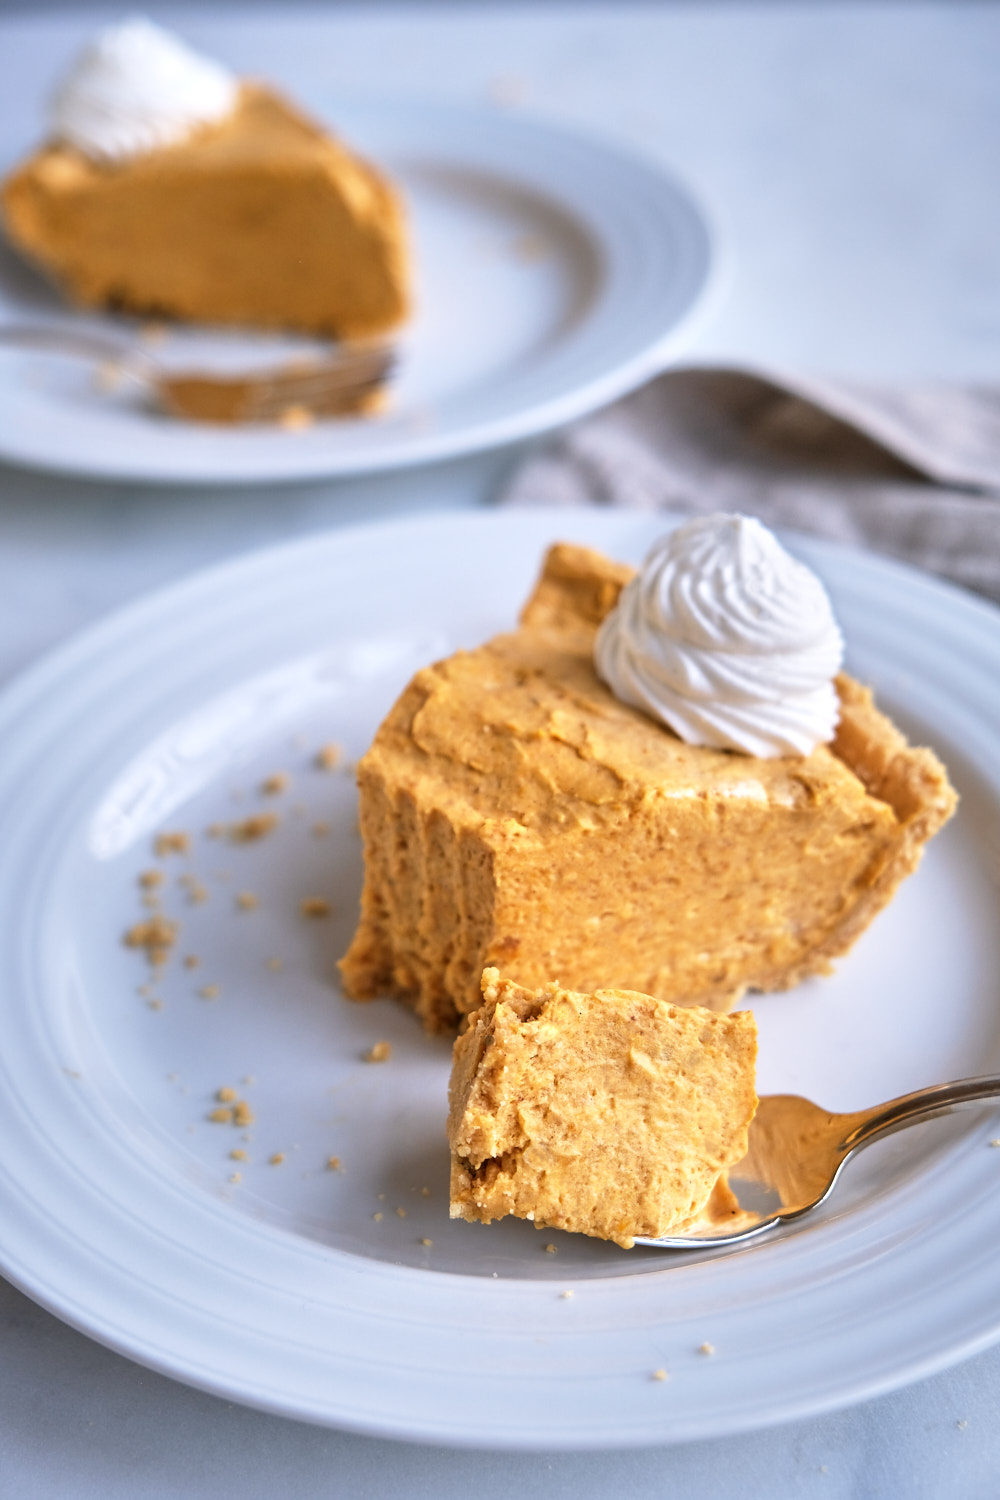 A slice of pumpkin cream pie on a plate with a bite on a fork.